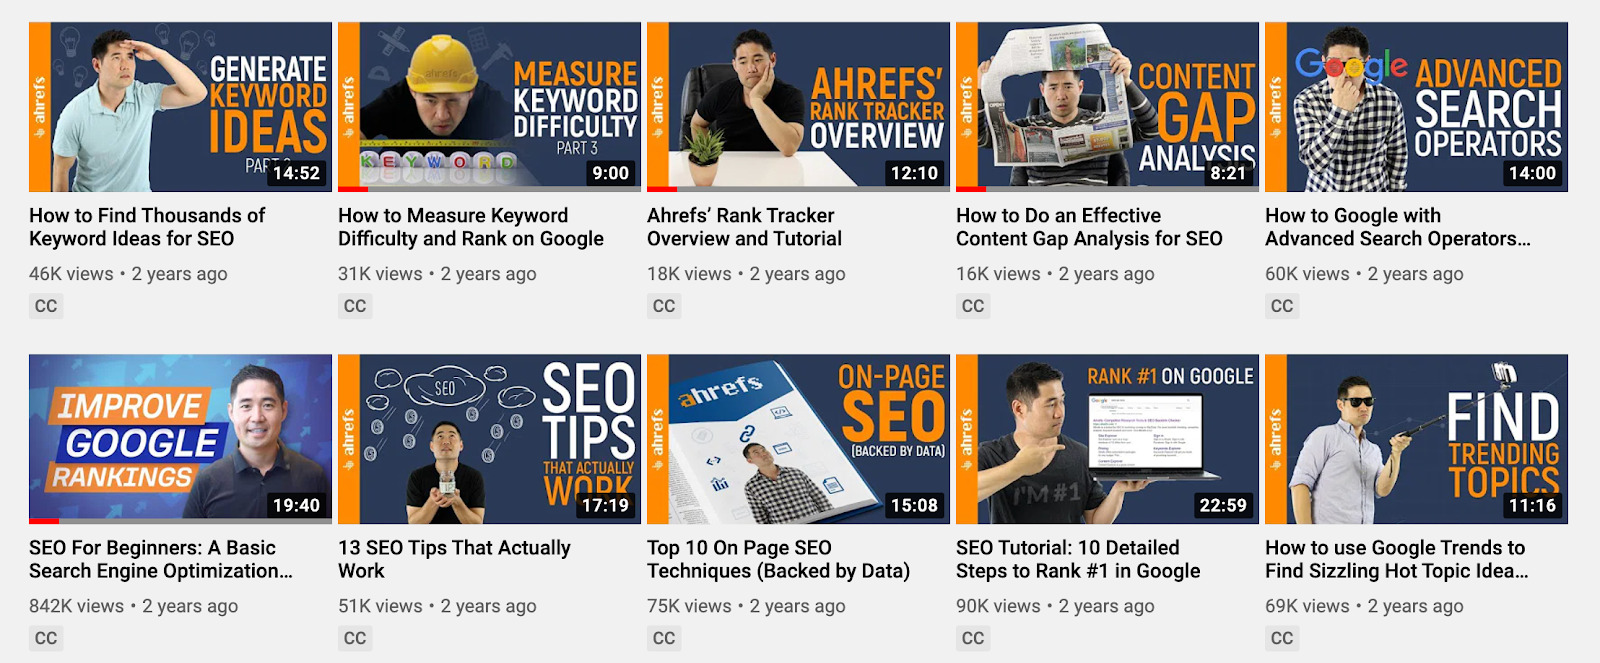 ahrefs youtube channel